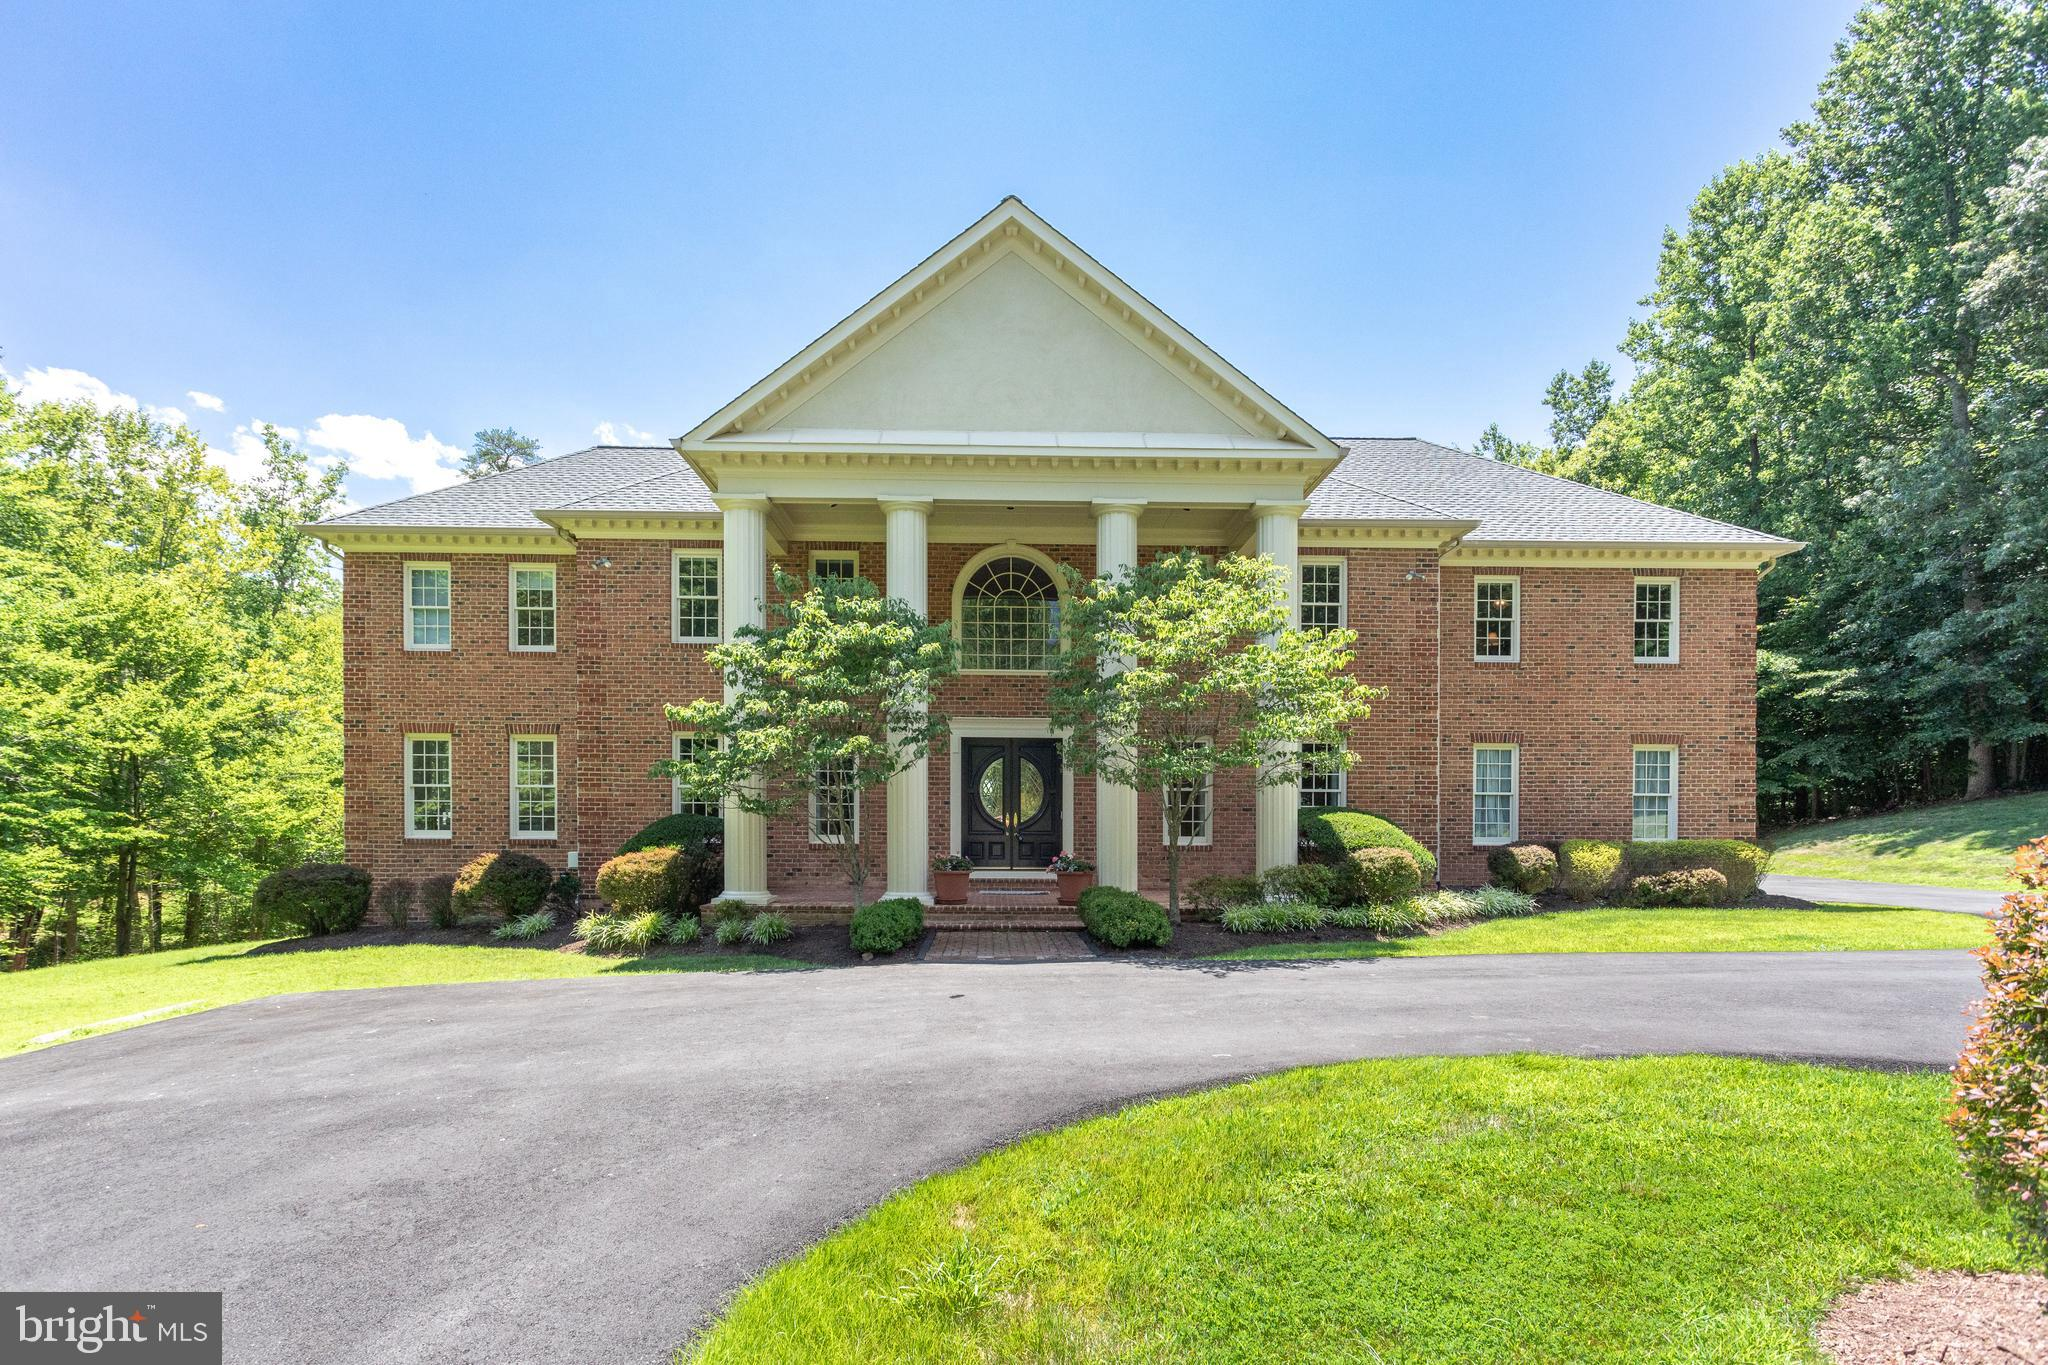 PRESENCE, PARADISE AND PRIVACY! Stately brick colonial mansion nestled on a beautiful 5 acre setting